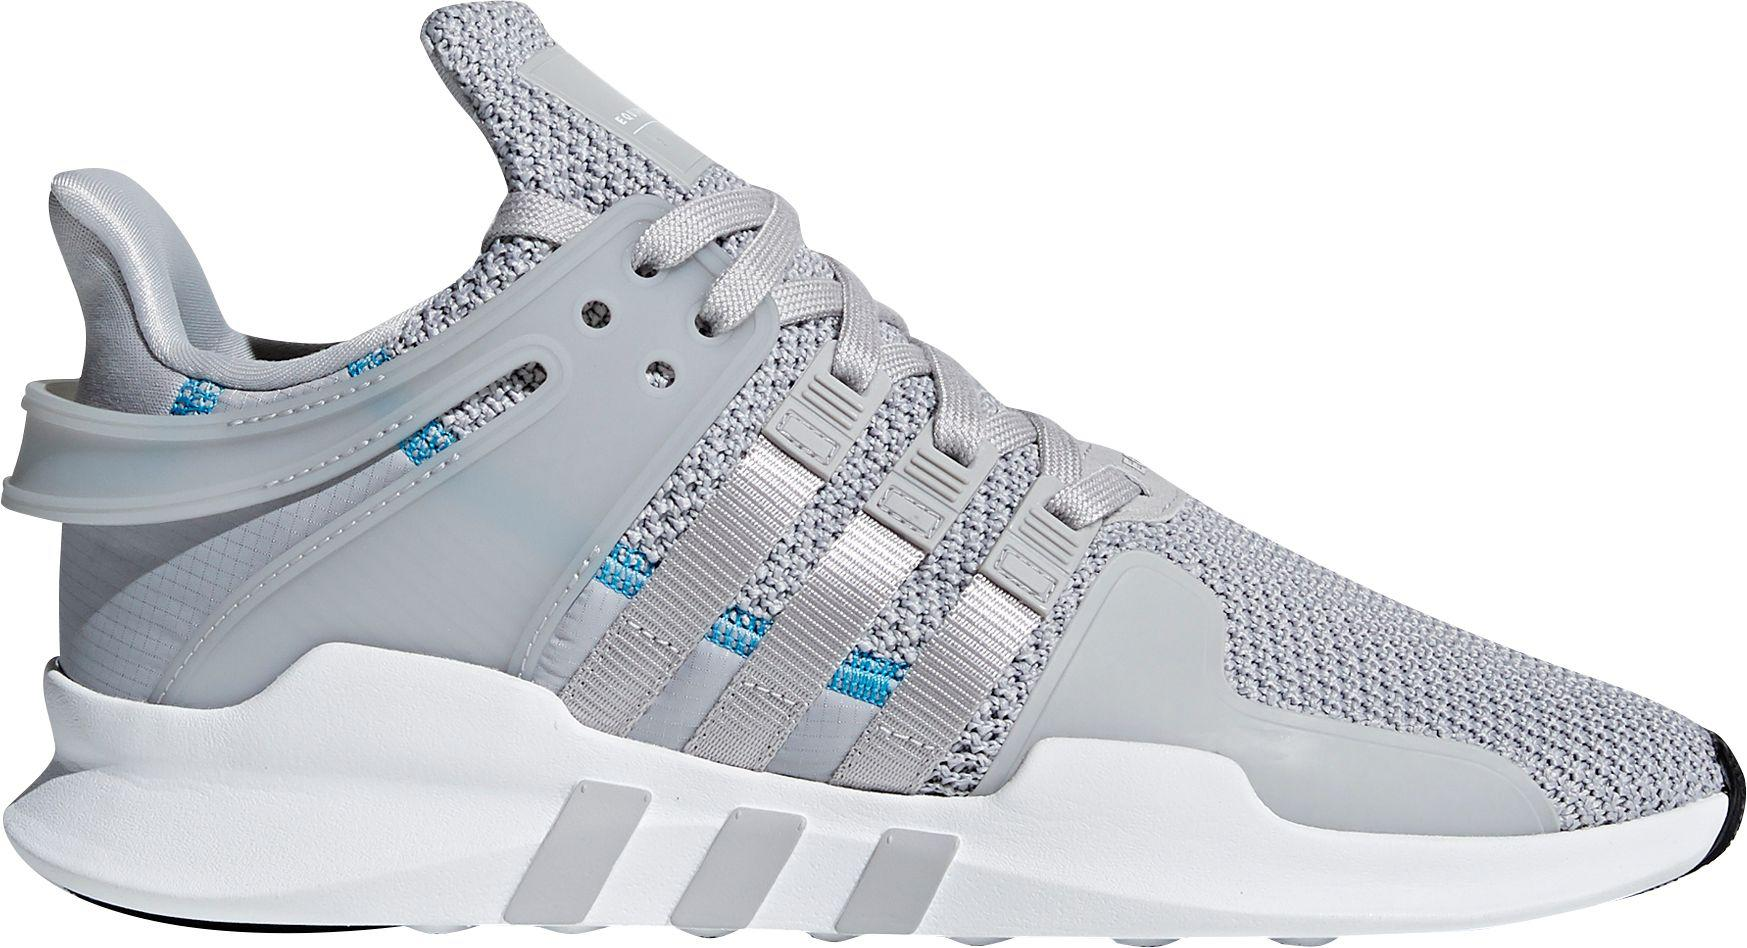 new styles 146b3 aab85 adidas. Mens Gray Originals Eqt Support Adv Shoes. 110 55 From Dicks  Sporting Goods